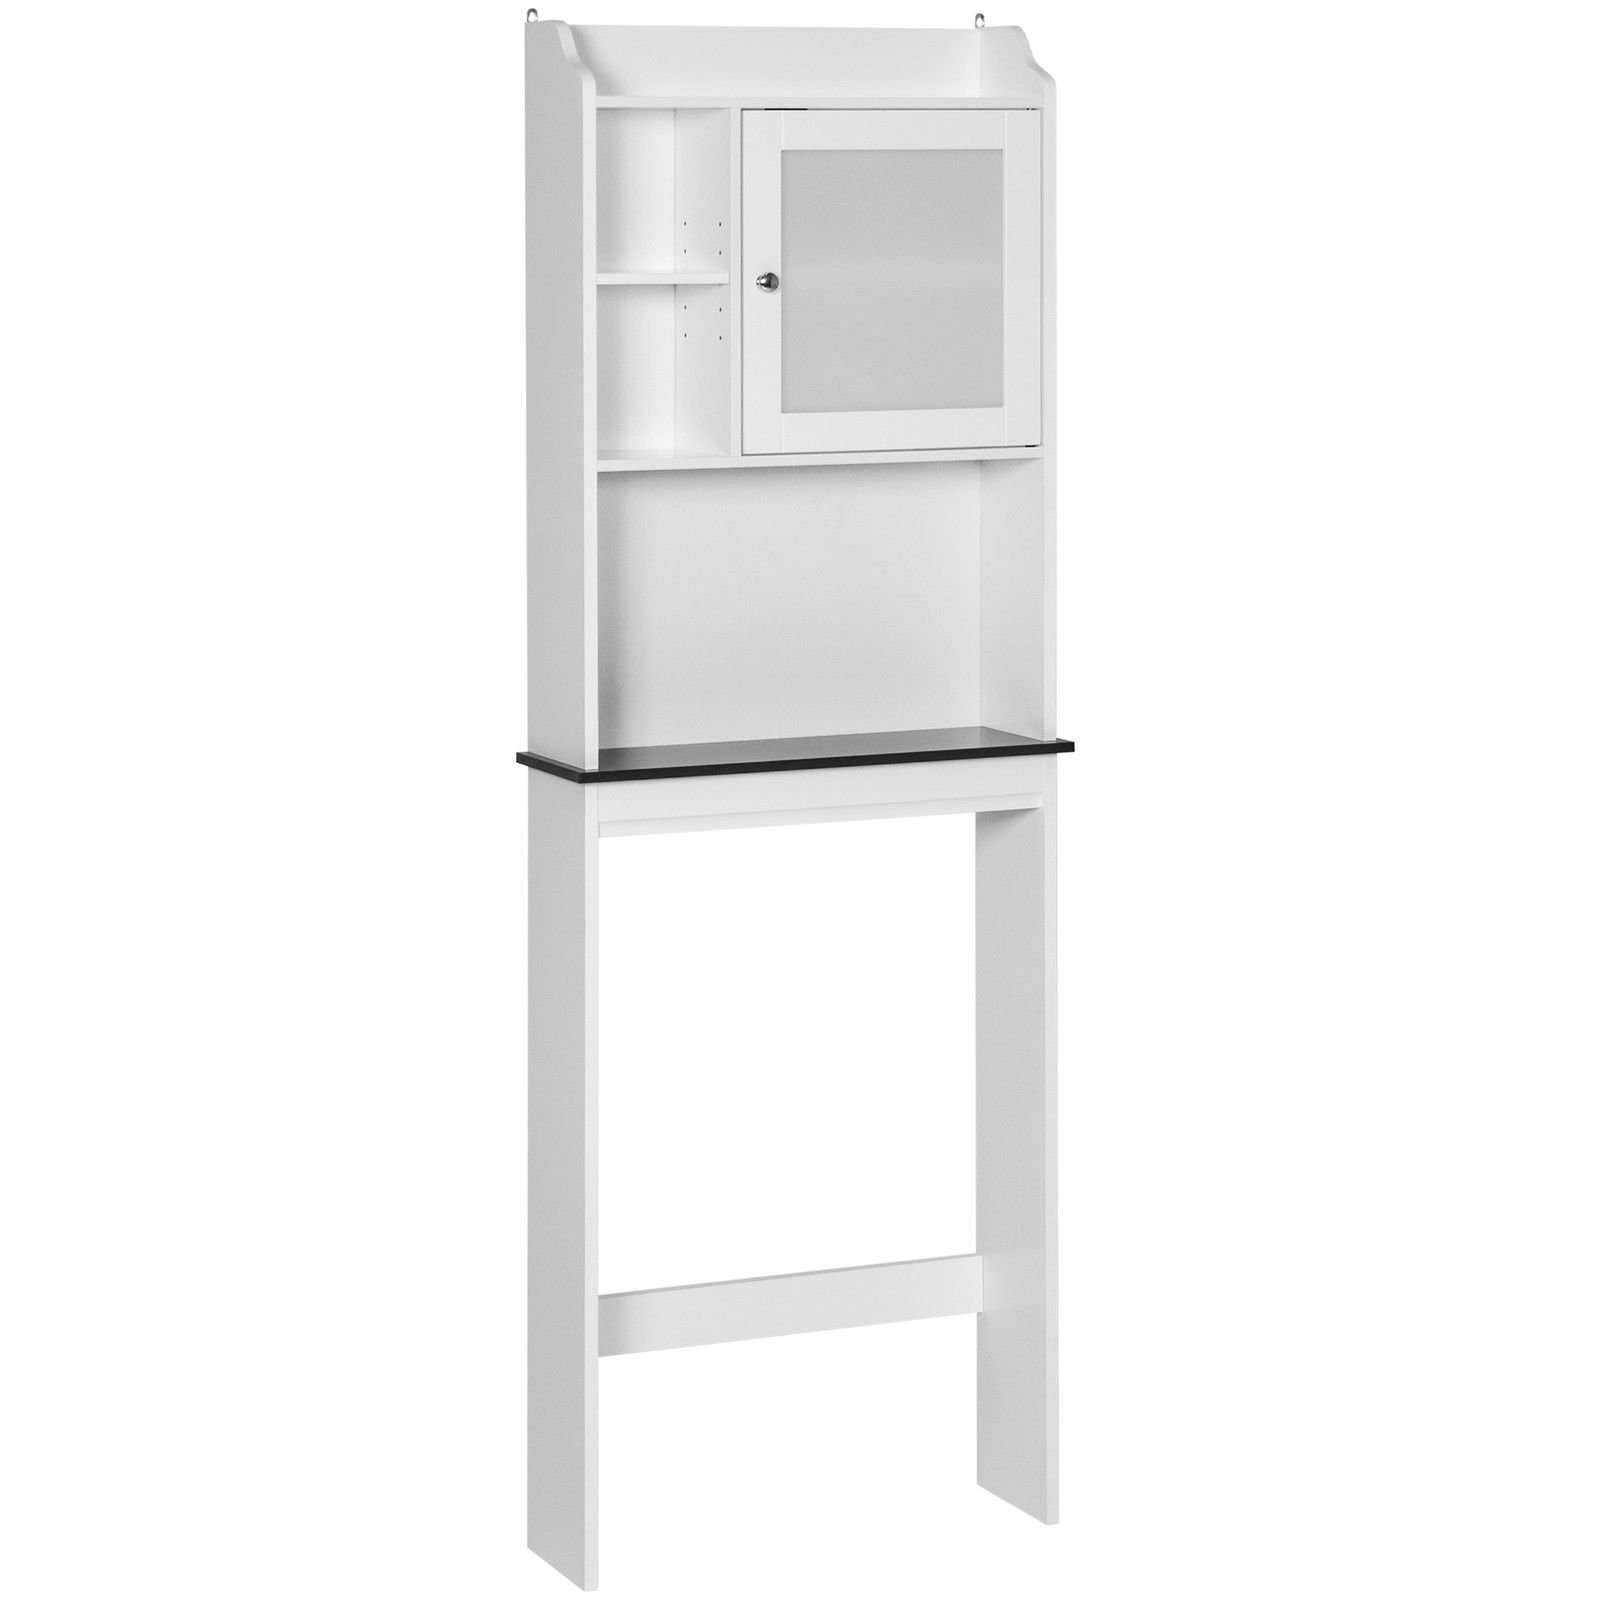 Over-the-Toilet Space Saver Storage Cabinet White New Bathroom